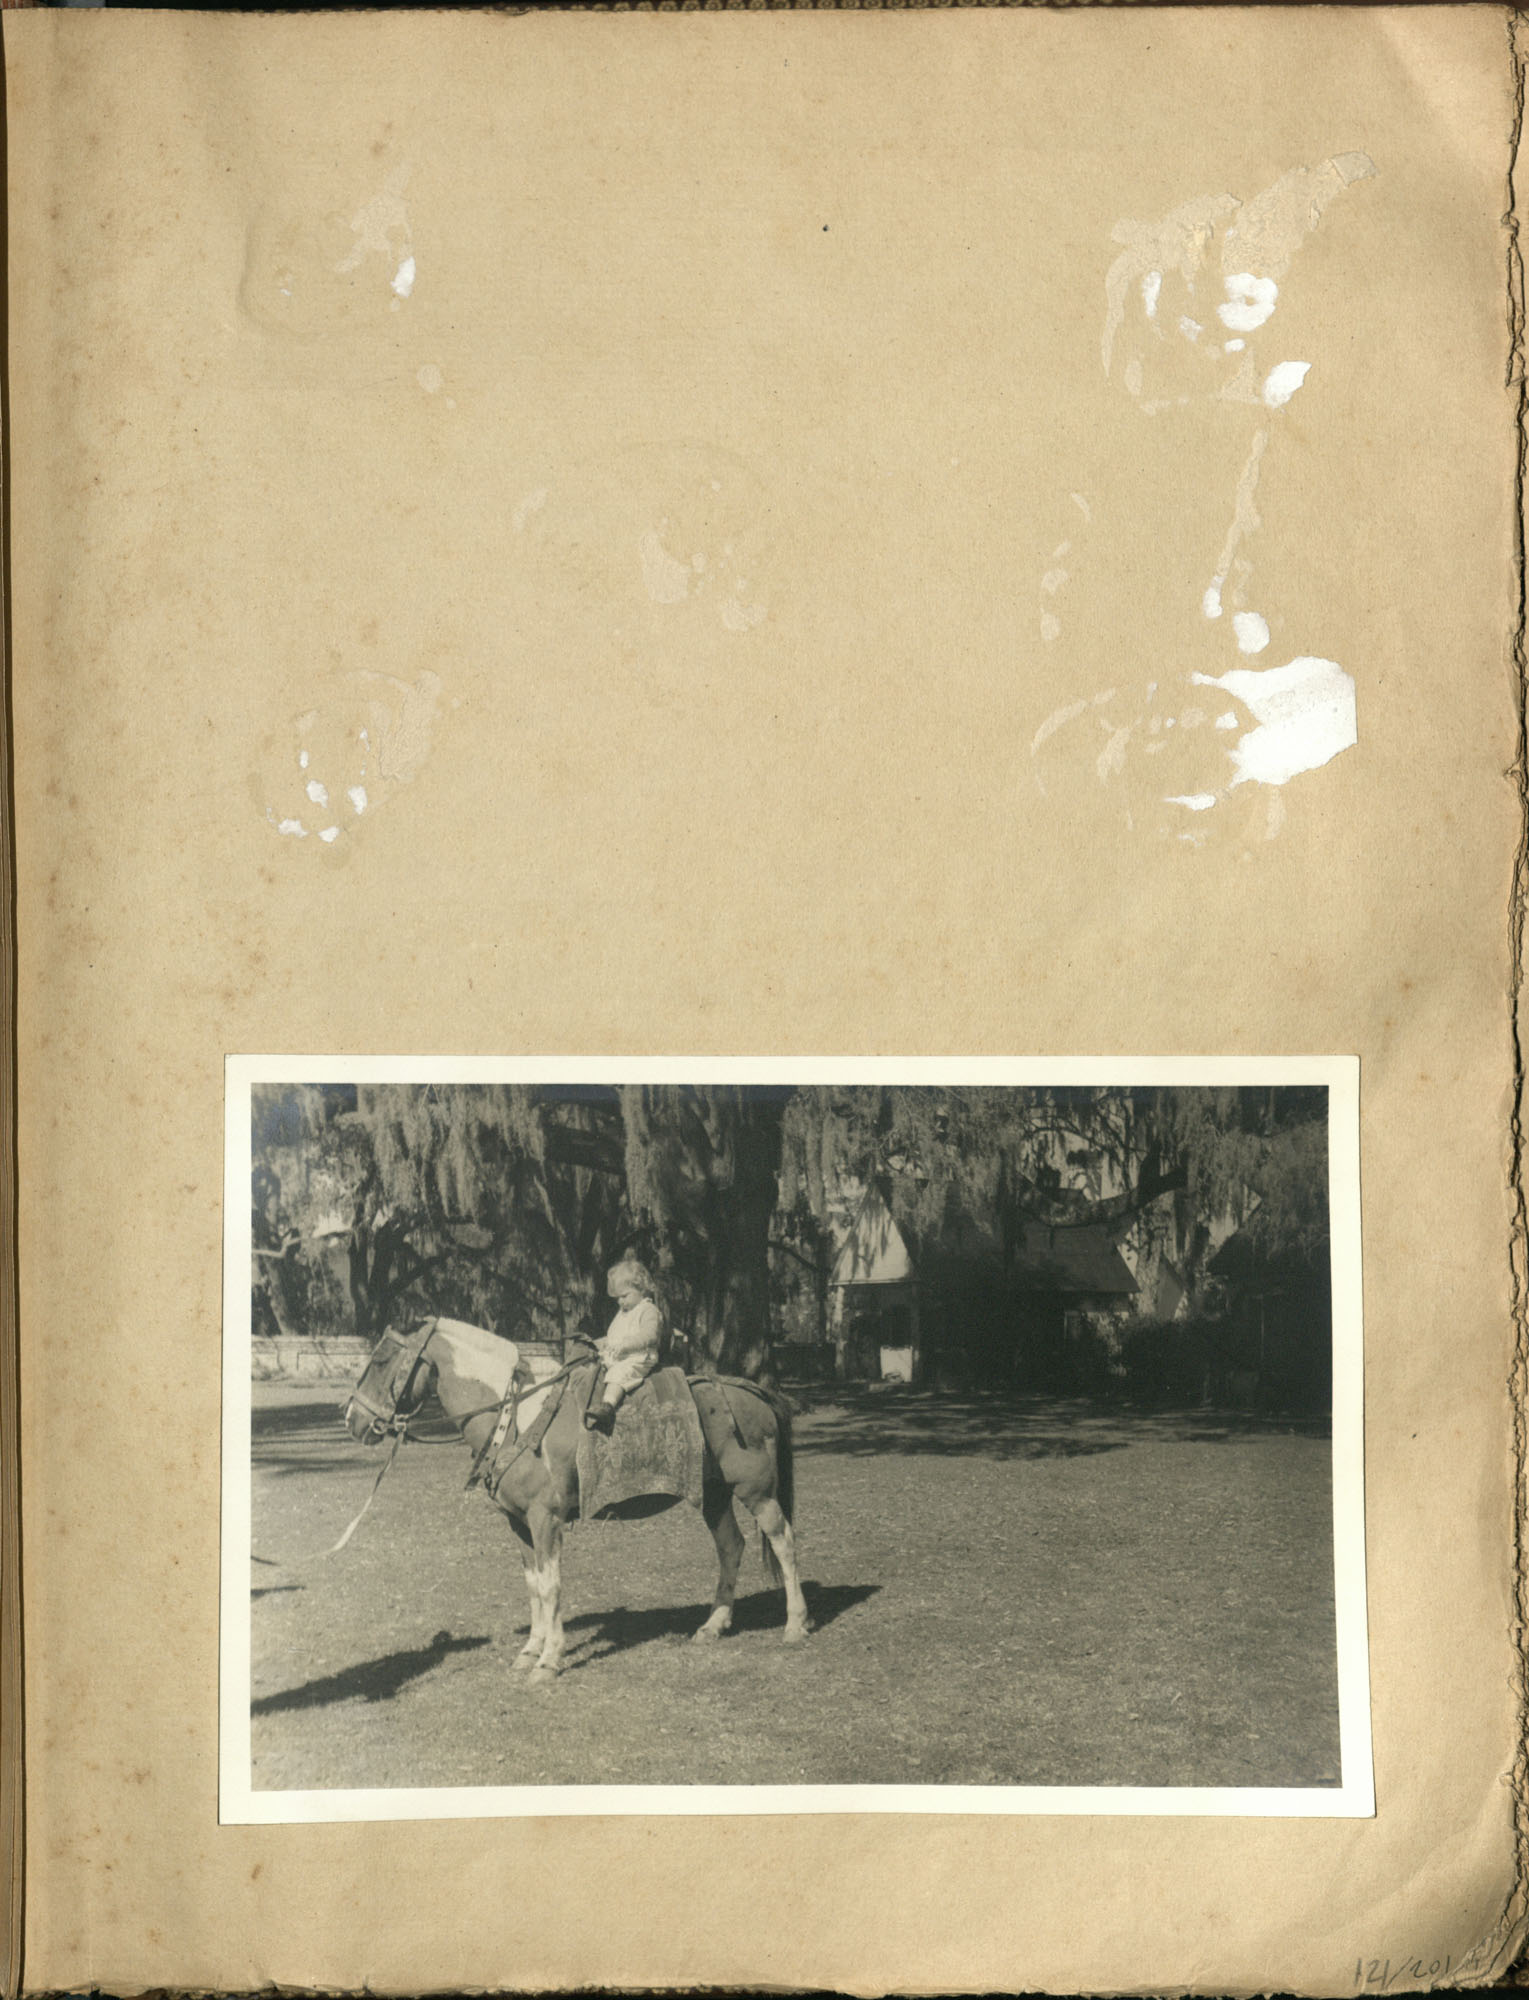 Early Medway and travels album, 1929-1937, page 121